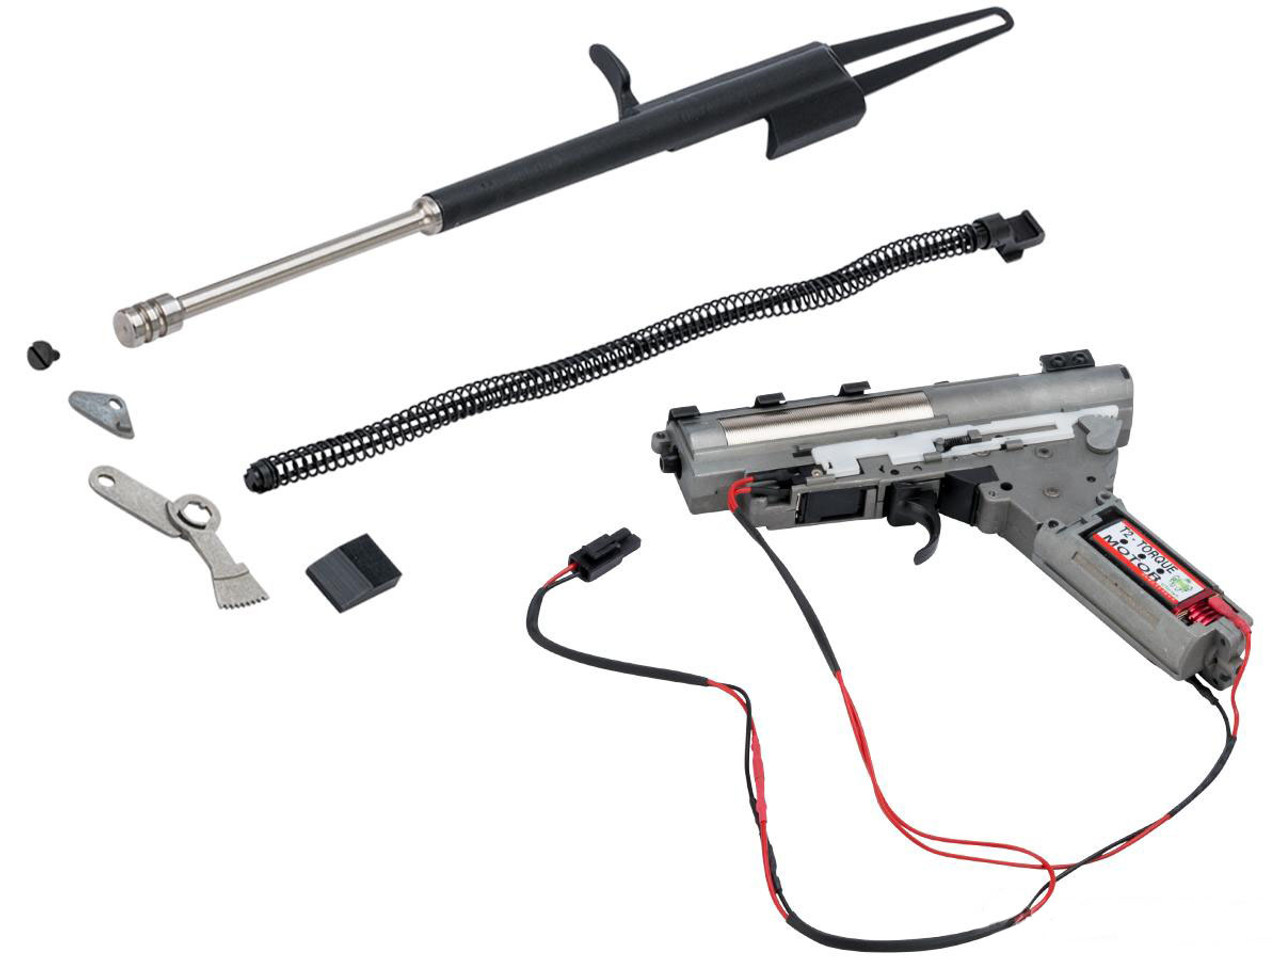 Lct Airsoft Complete Gearbox W Electric Blowback And Recoil Kit For Ak Series Airsoft Aeg Type Long Bolt Hero Outdoors